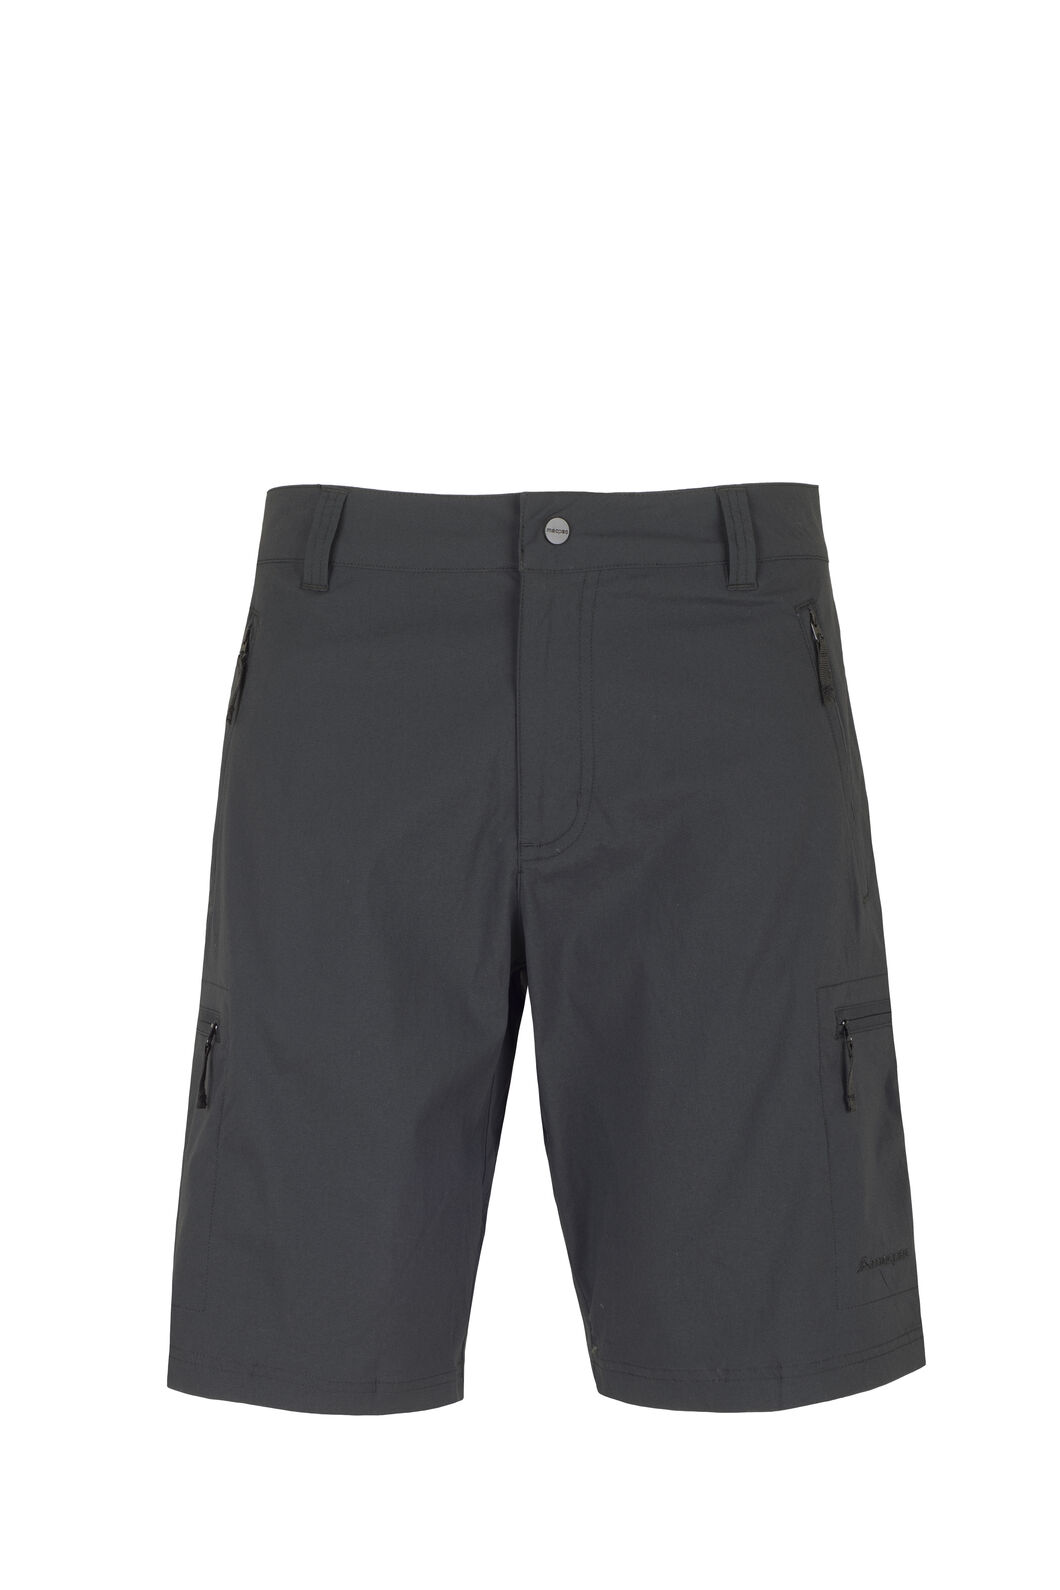 Macpac Drift Shorts - Men's, Black, hi-res